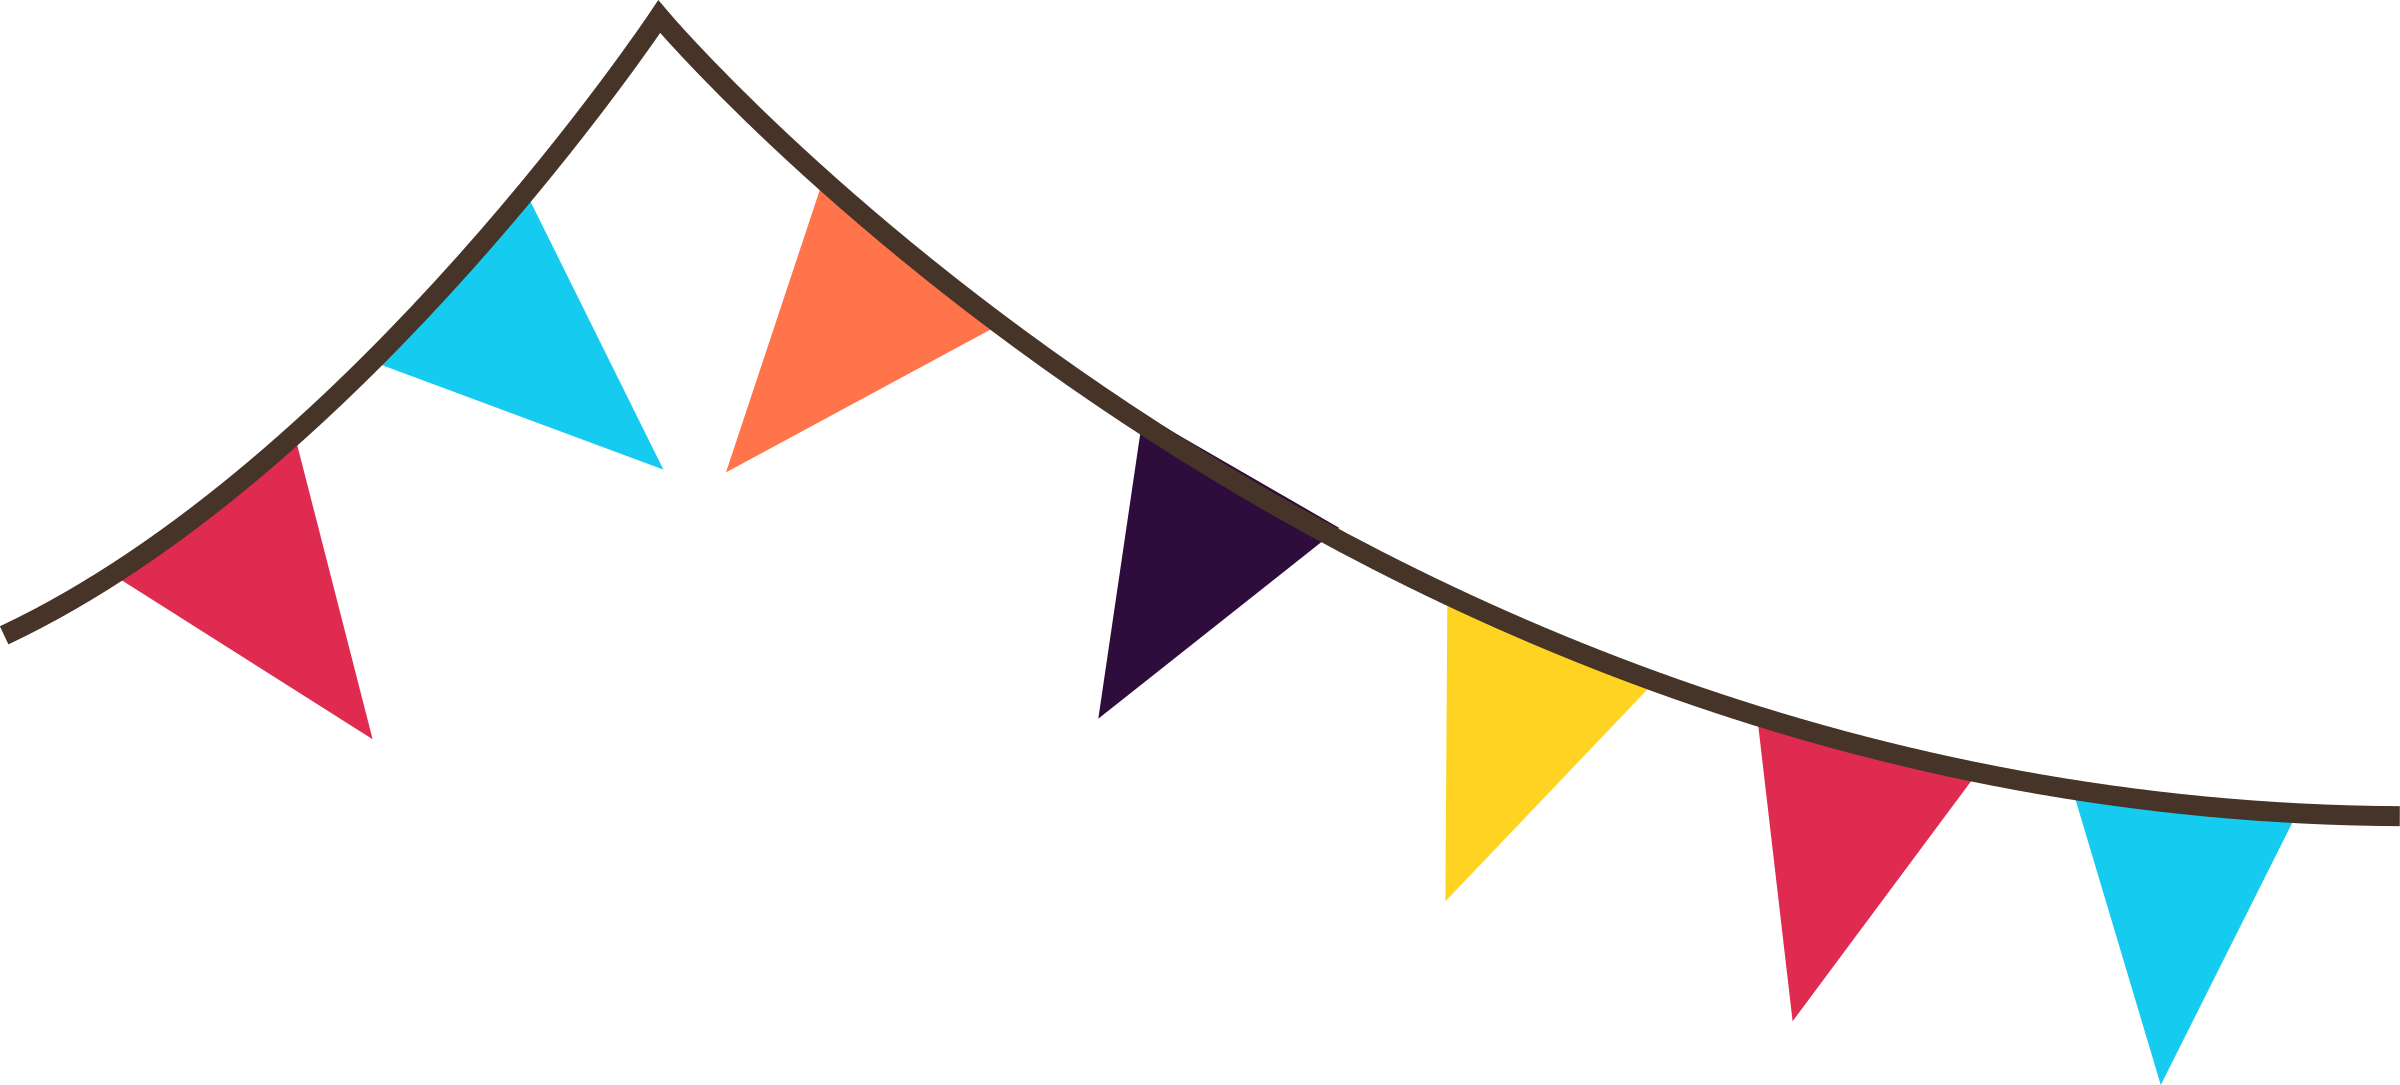 Pennant banner clipart png. Best free flag transparent